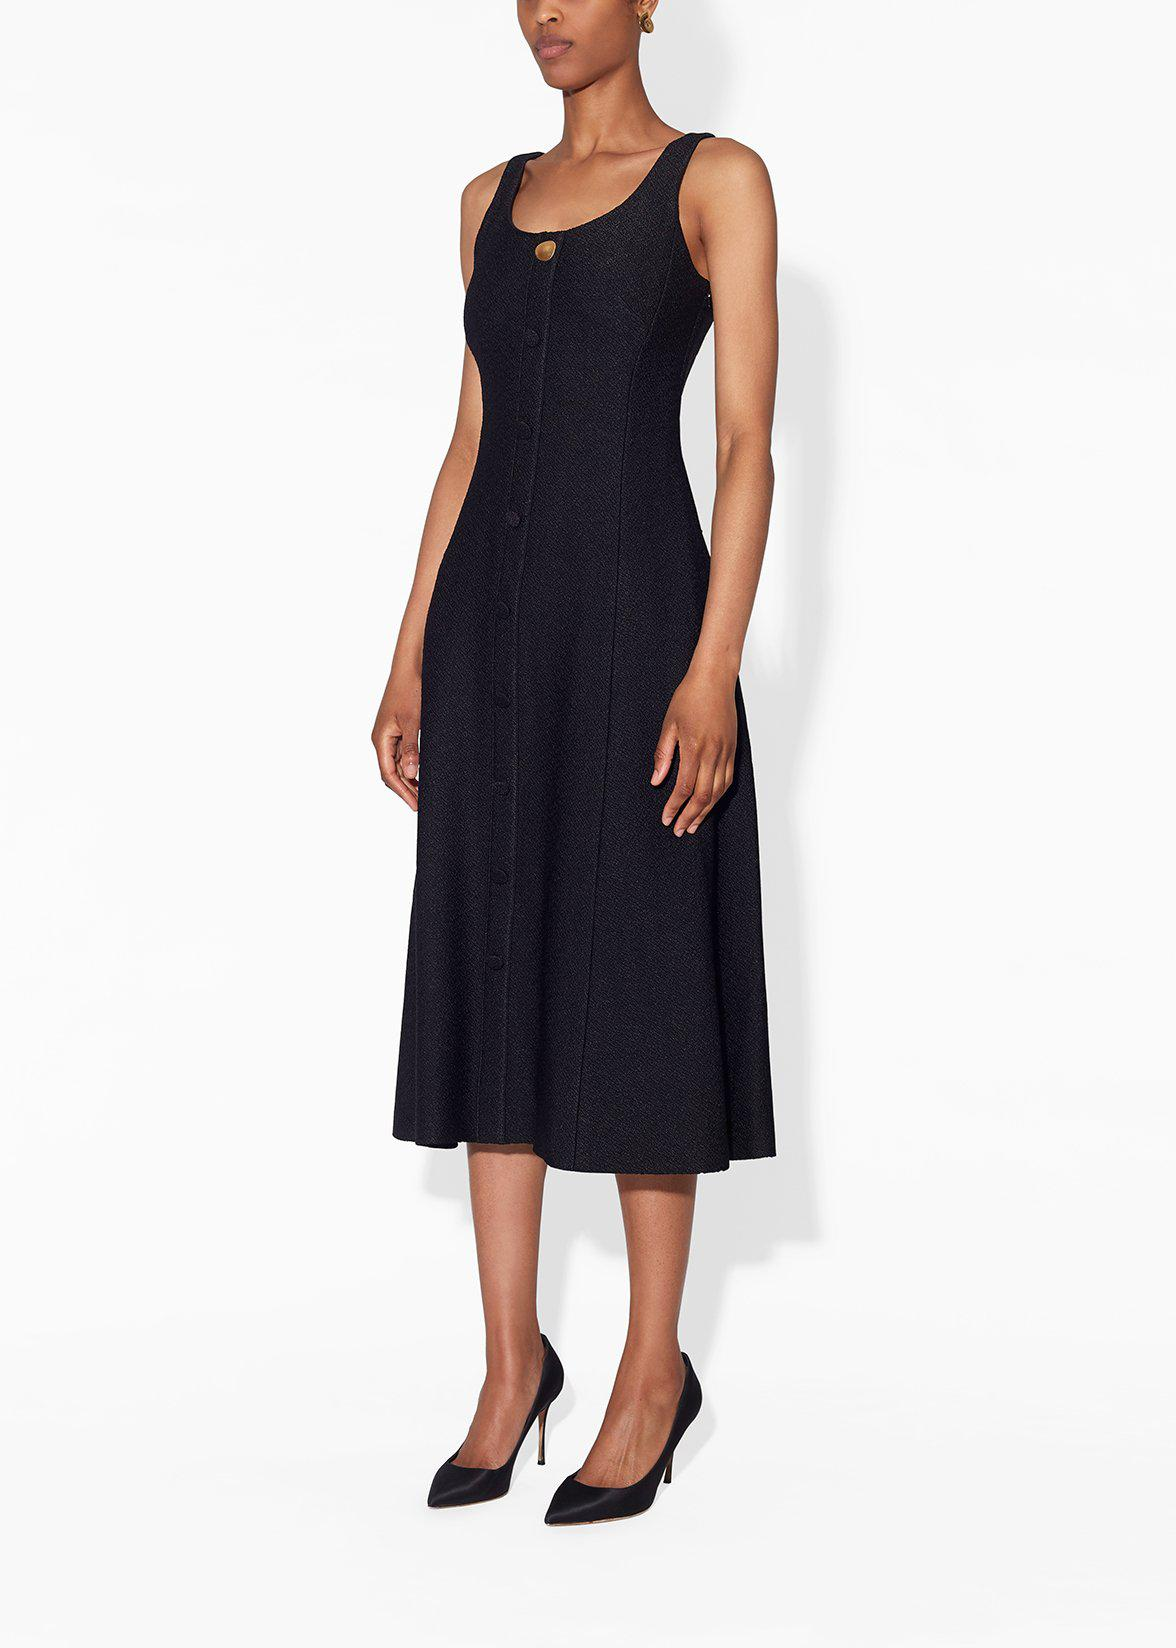 SCOOP NECK FLARE DRESS IN BOUCLE